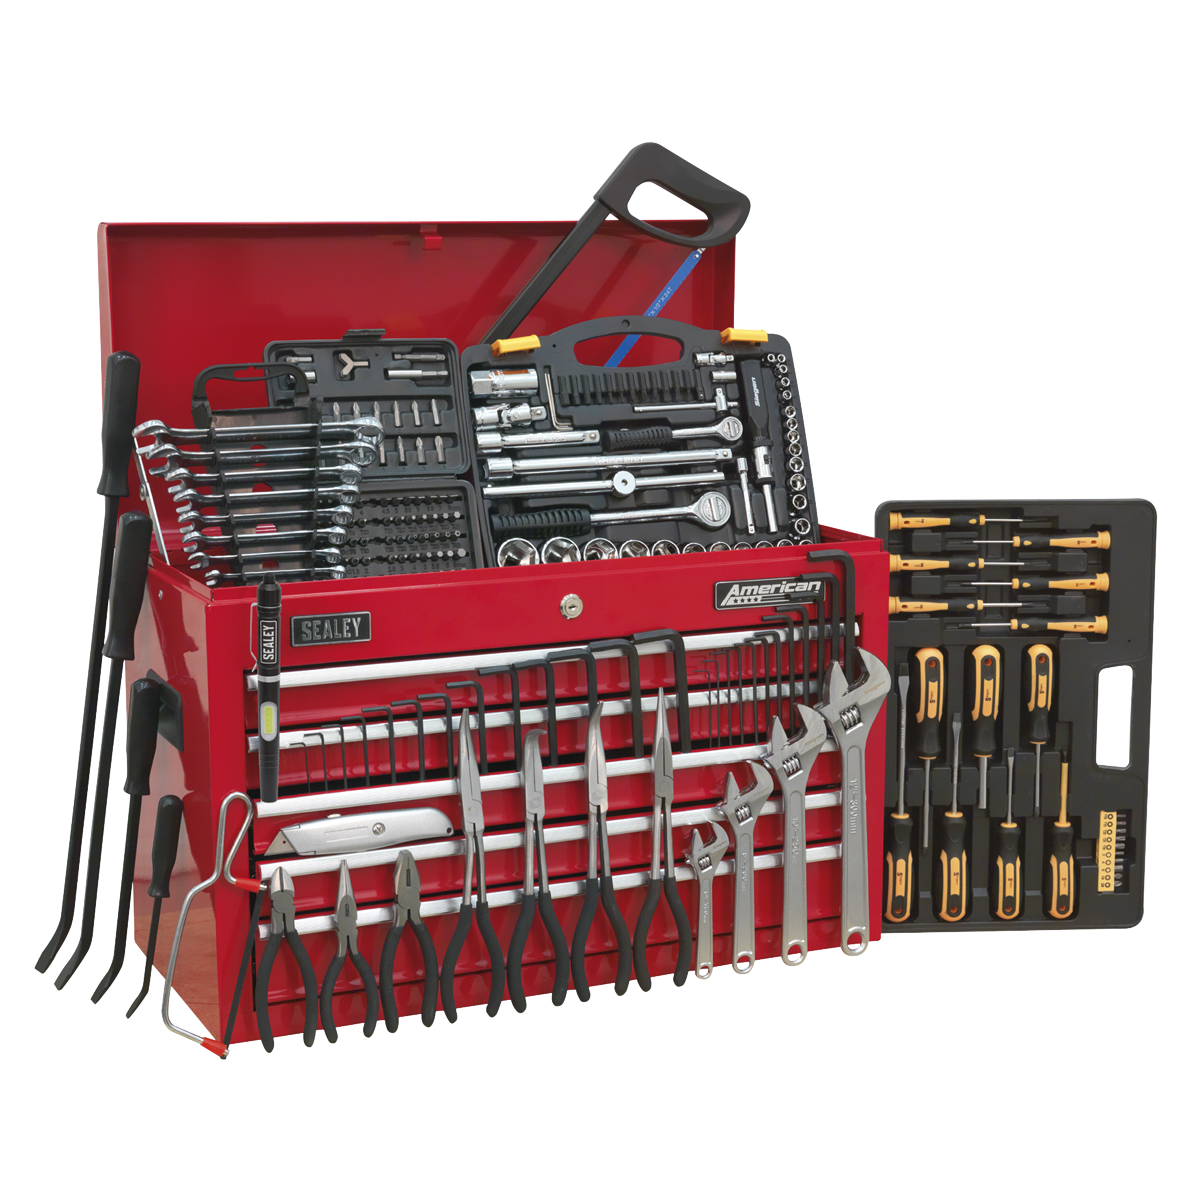 American PRO® 5 Drawer Topchest Part Number AP225 with 230pc Tool Kit. Tools included - Model No's: LED016, S0433.